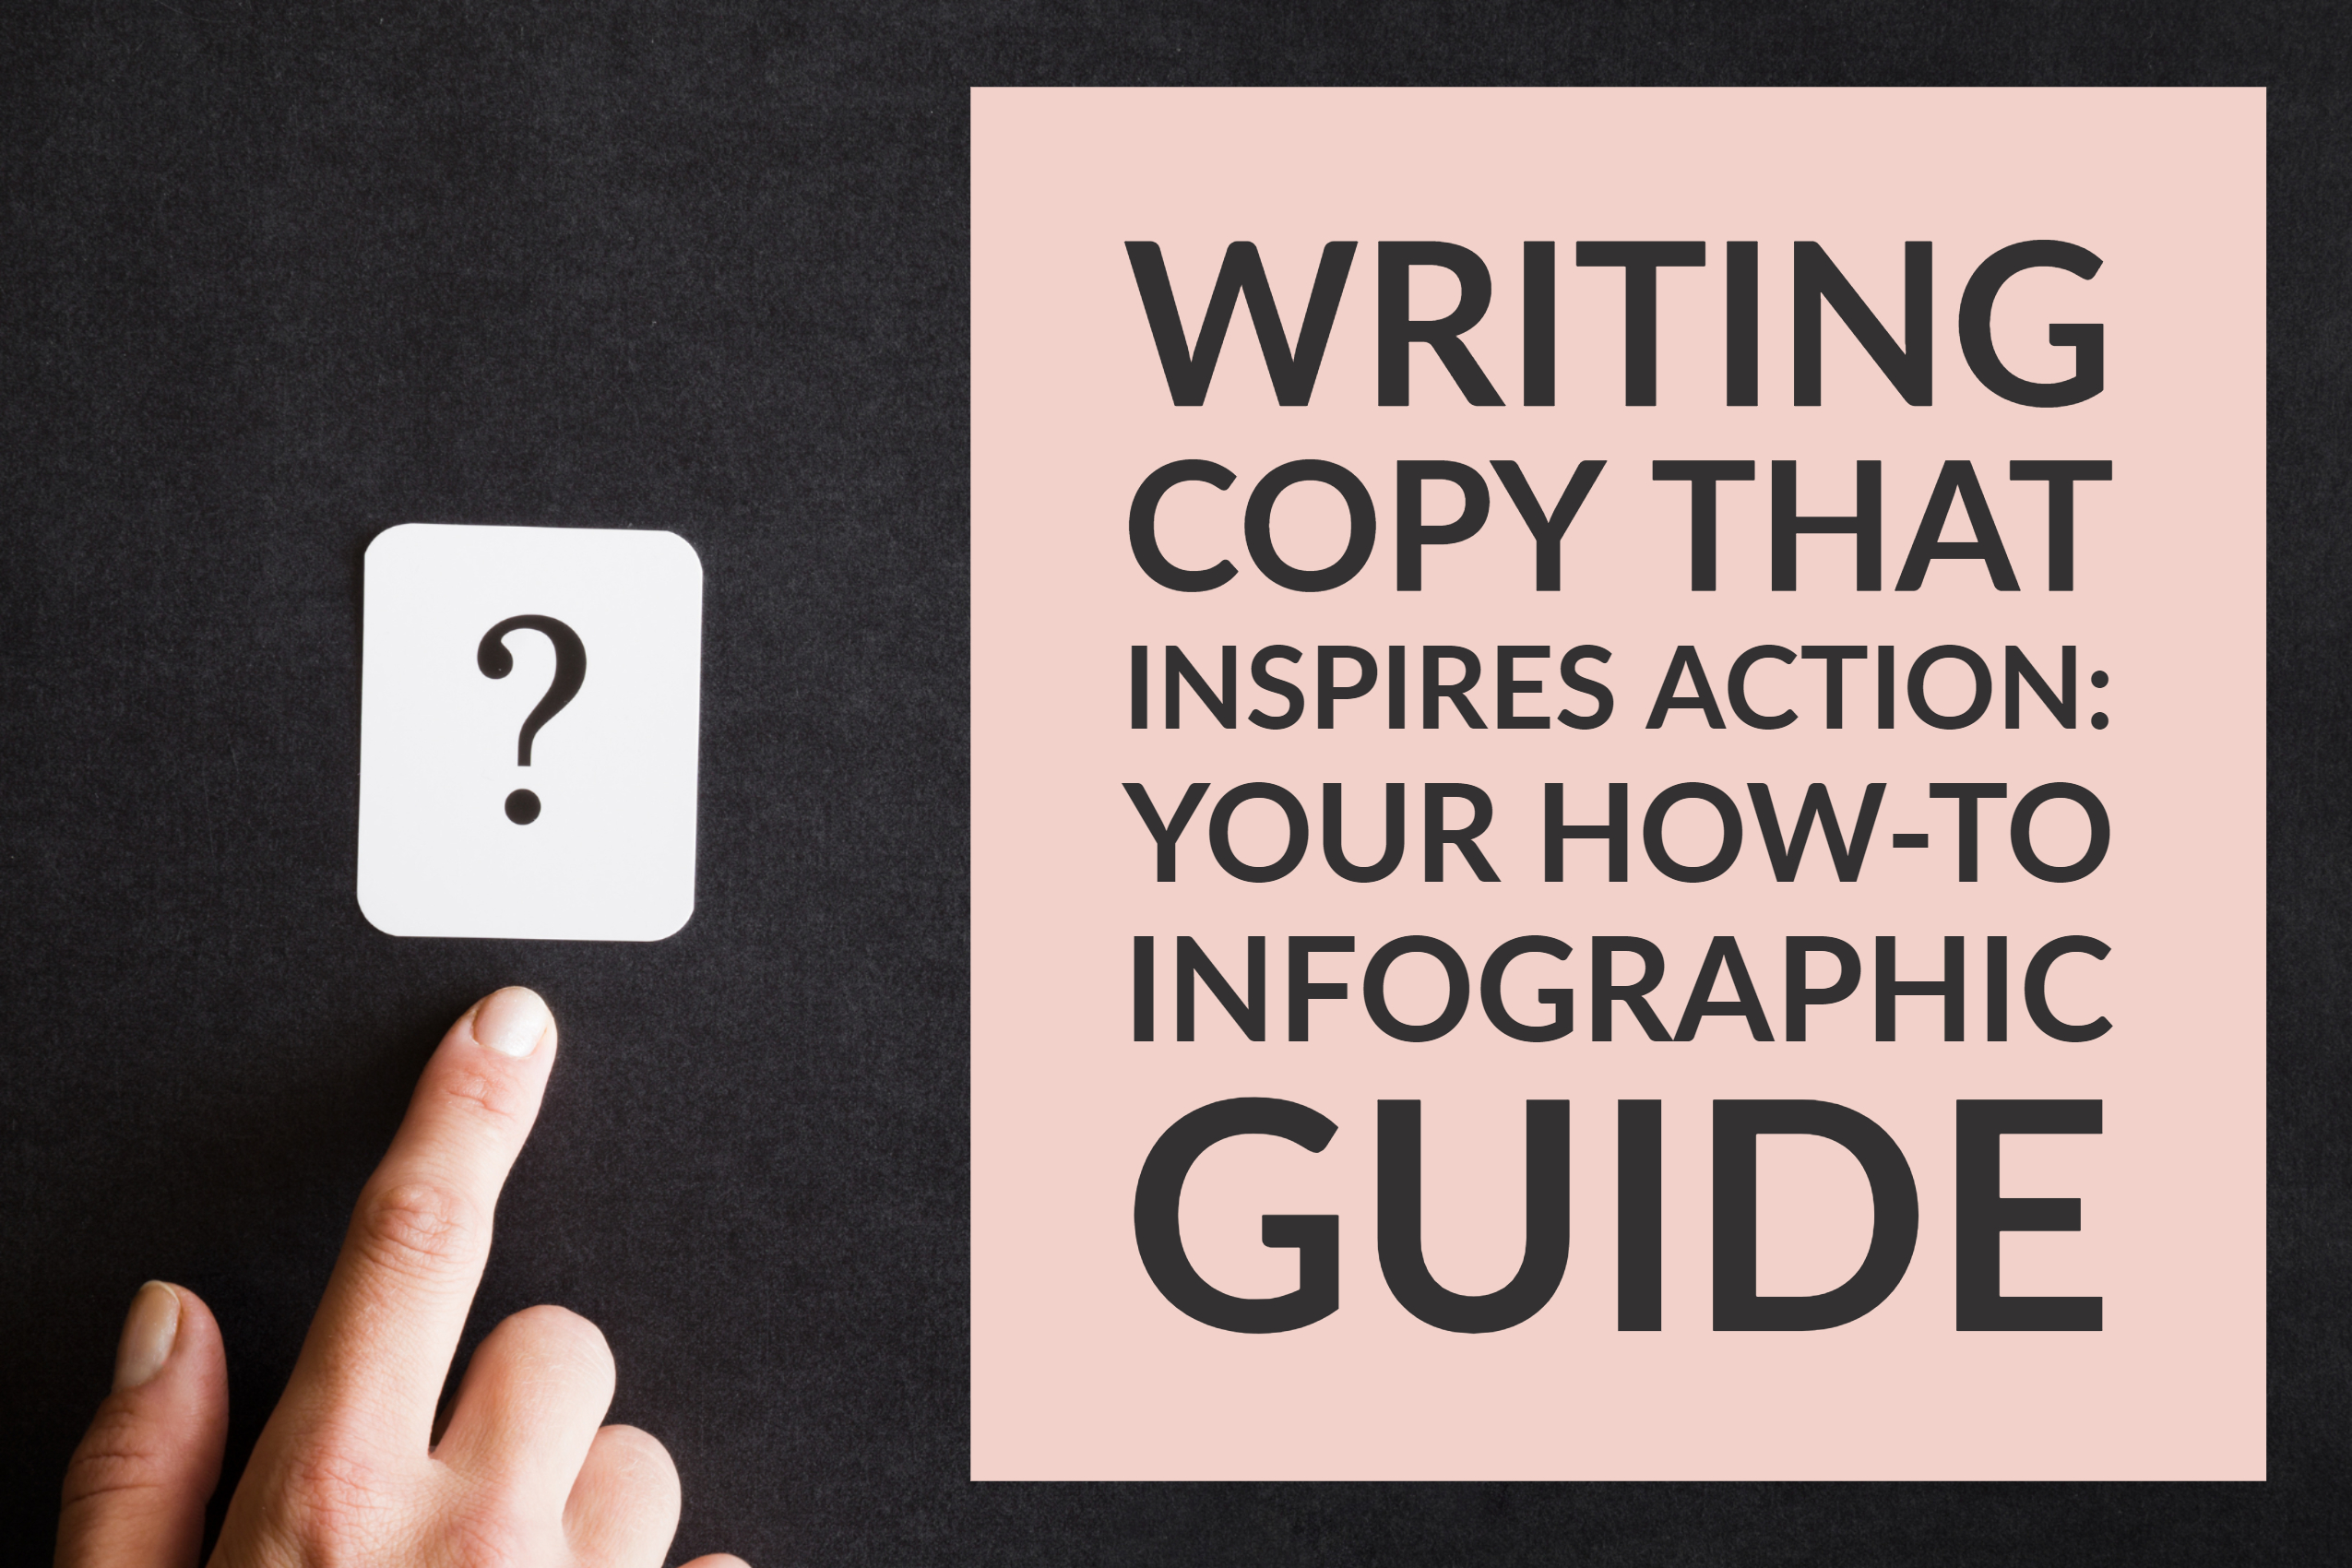 Writing Copy That Inspires Action_ Your How-To Infographic Guide